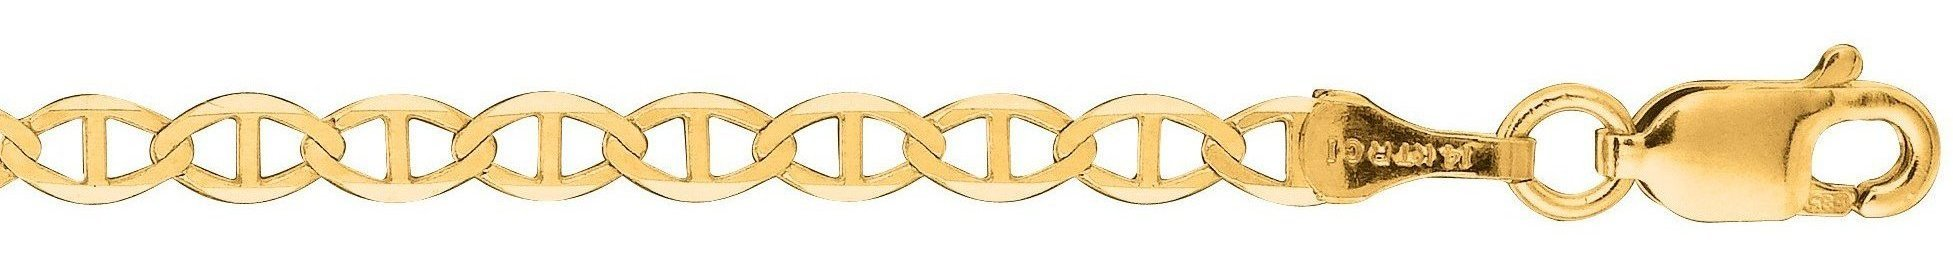 "16"" 10K Yellow Gold 3.20mm (1/8"") Polished Diamond Cut Marina Link Chain w/ Lobster Clasp"